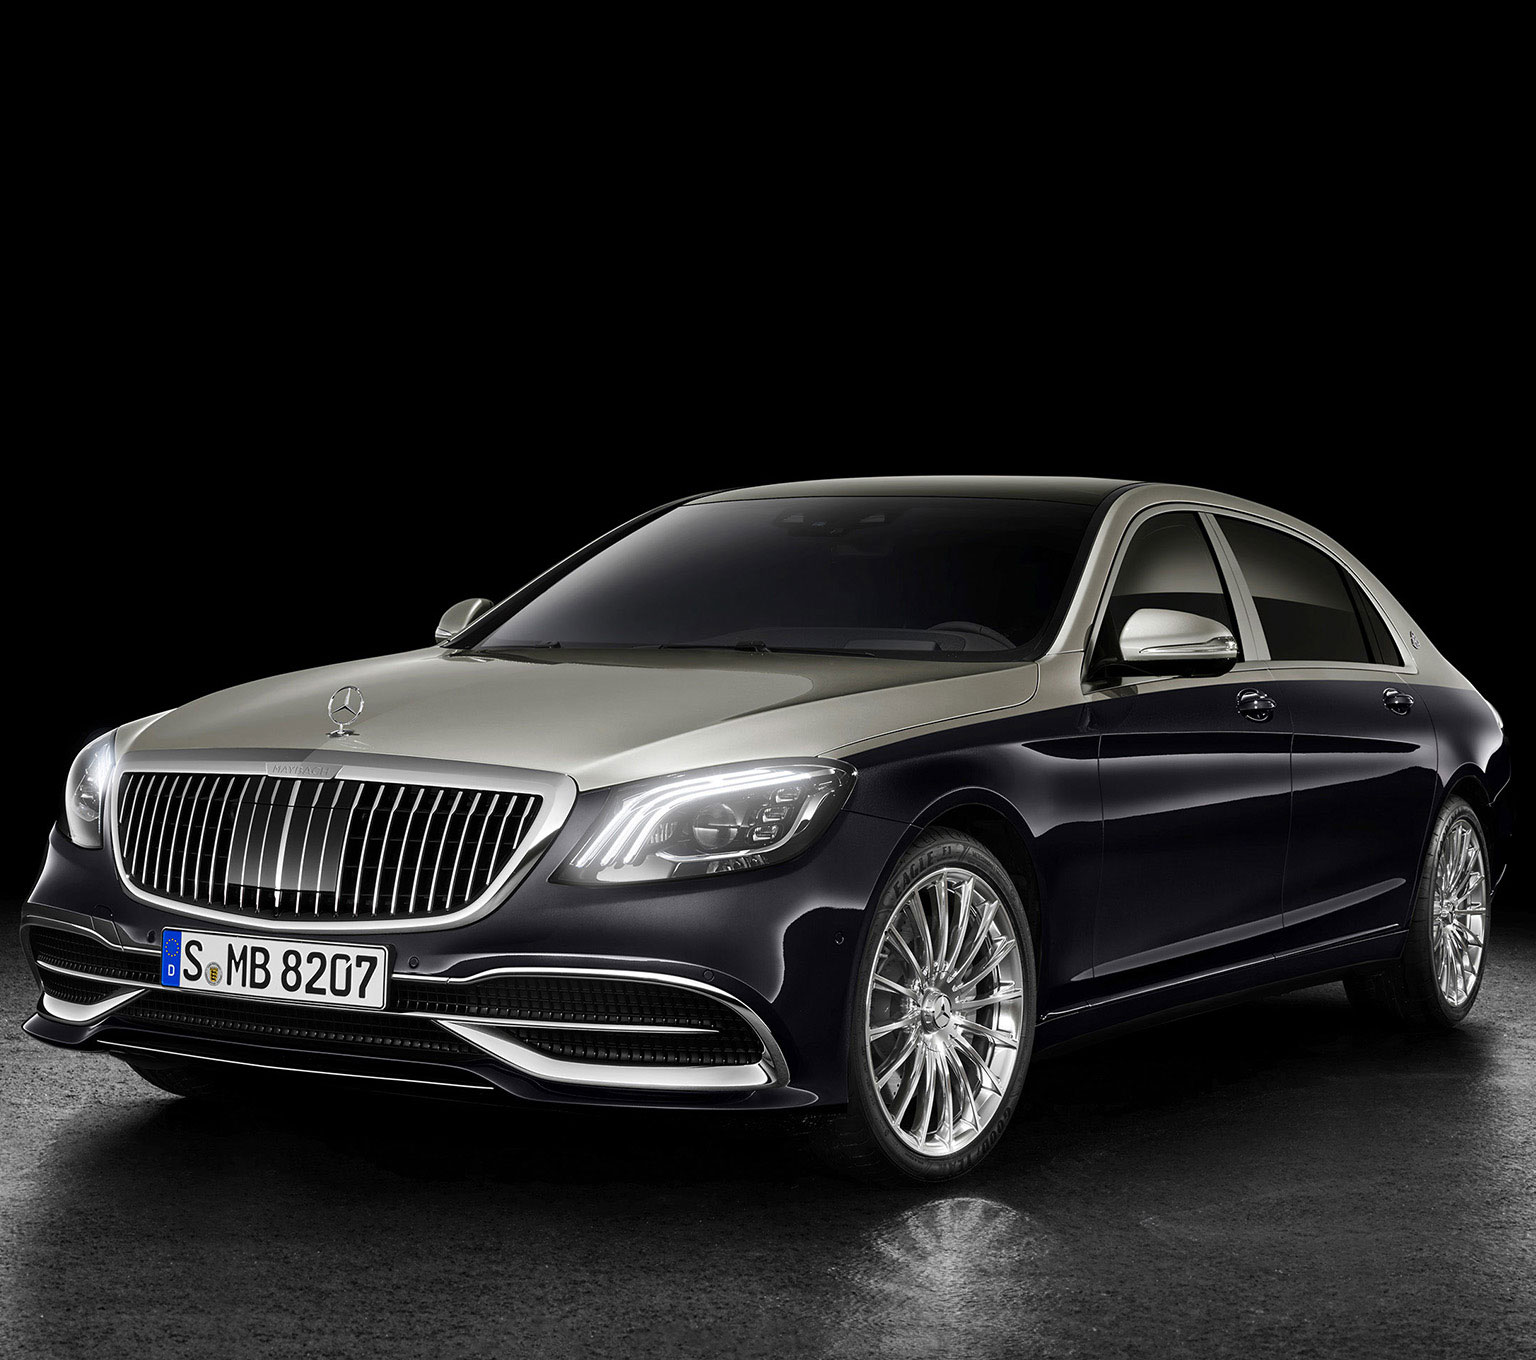 2019 S Class Maybach Sedan Future Highlights 01 Dr O Mercedes Benz